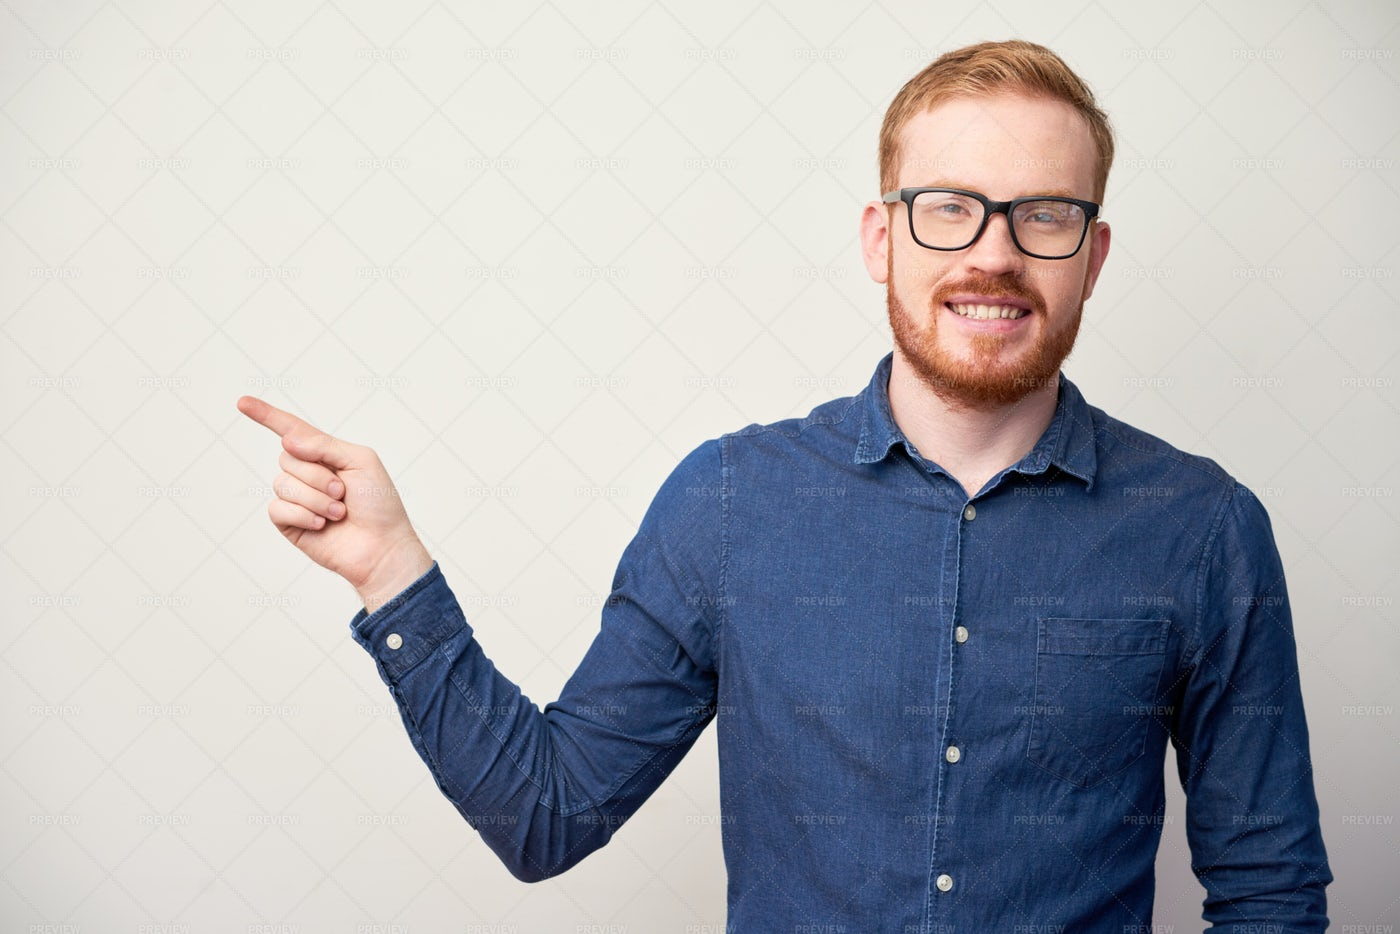 Happy Man Pointing With Finger: Stock Photos